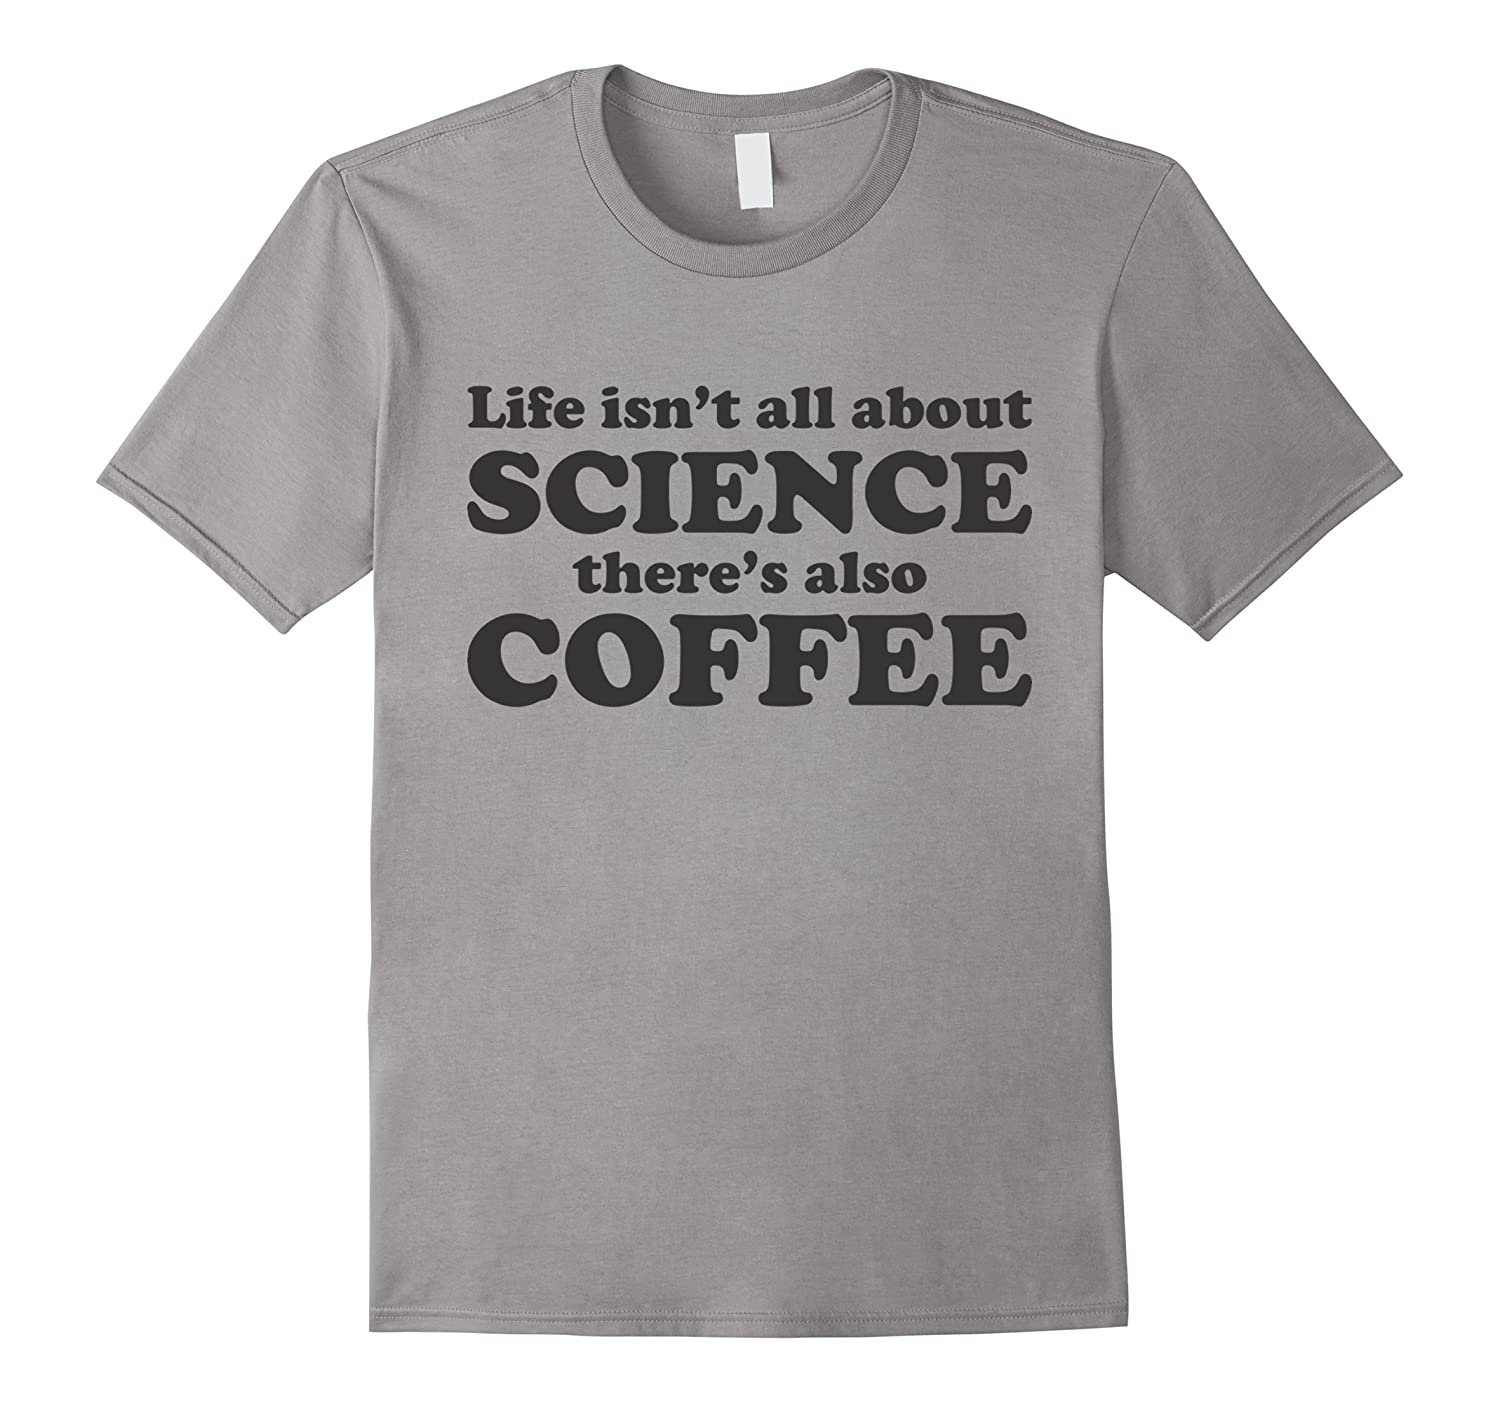 0a1126b0 Funny Science Teacher T-shirts - Science and Coffee-ANZ ⋆ Anztshirt